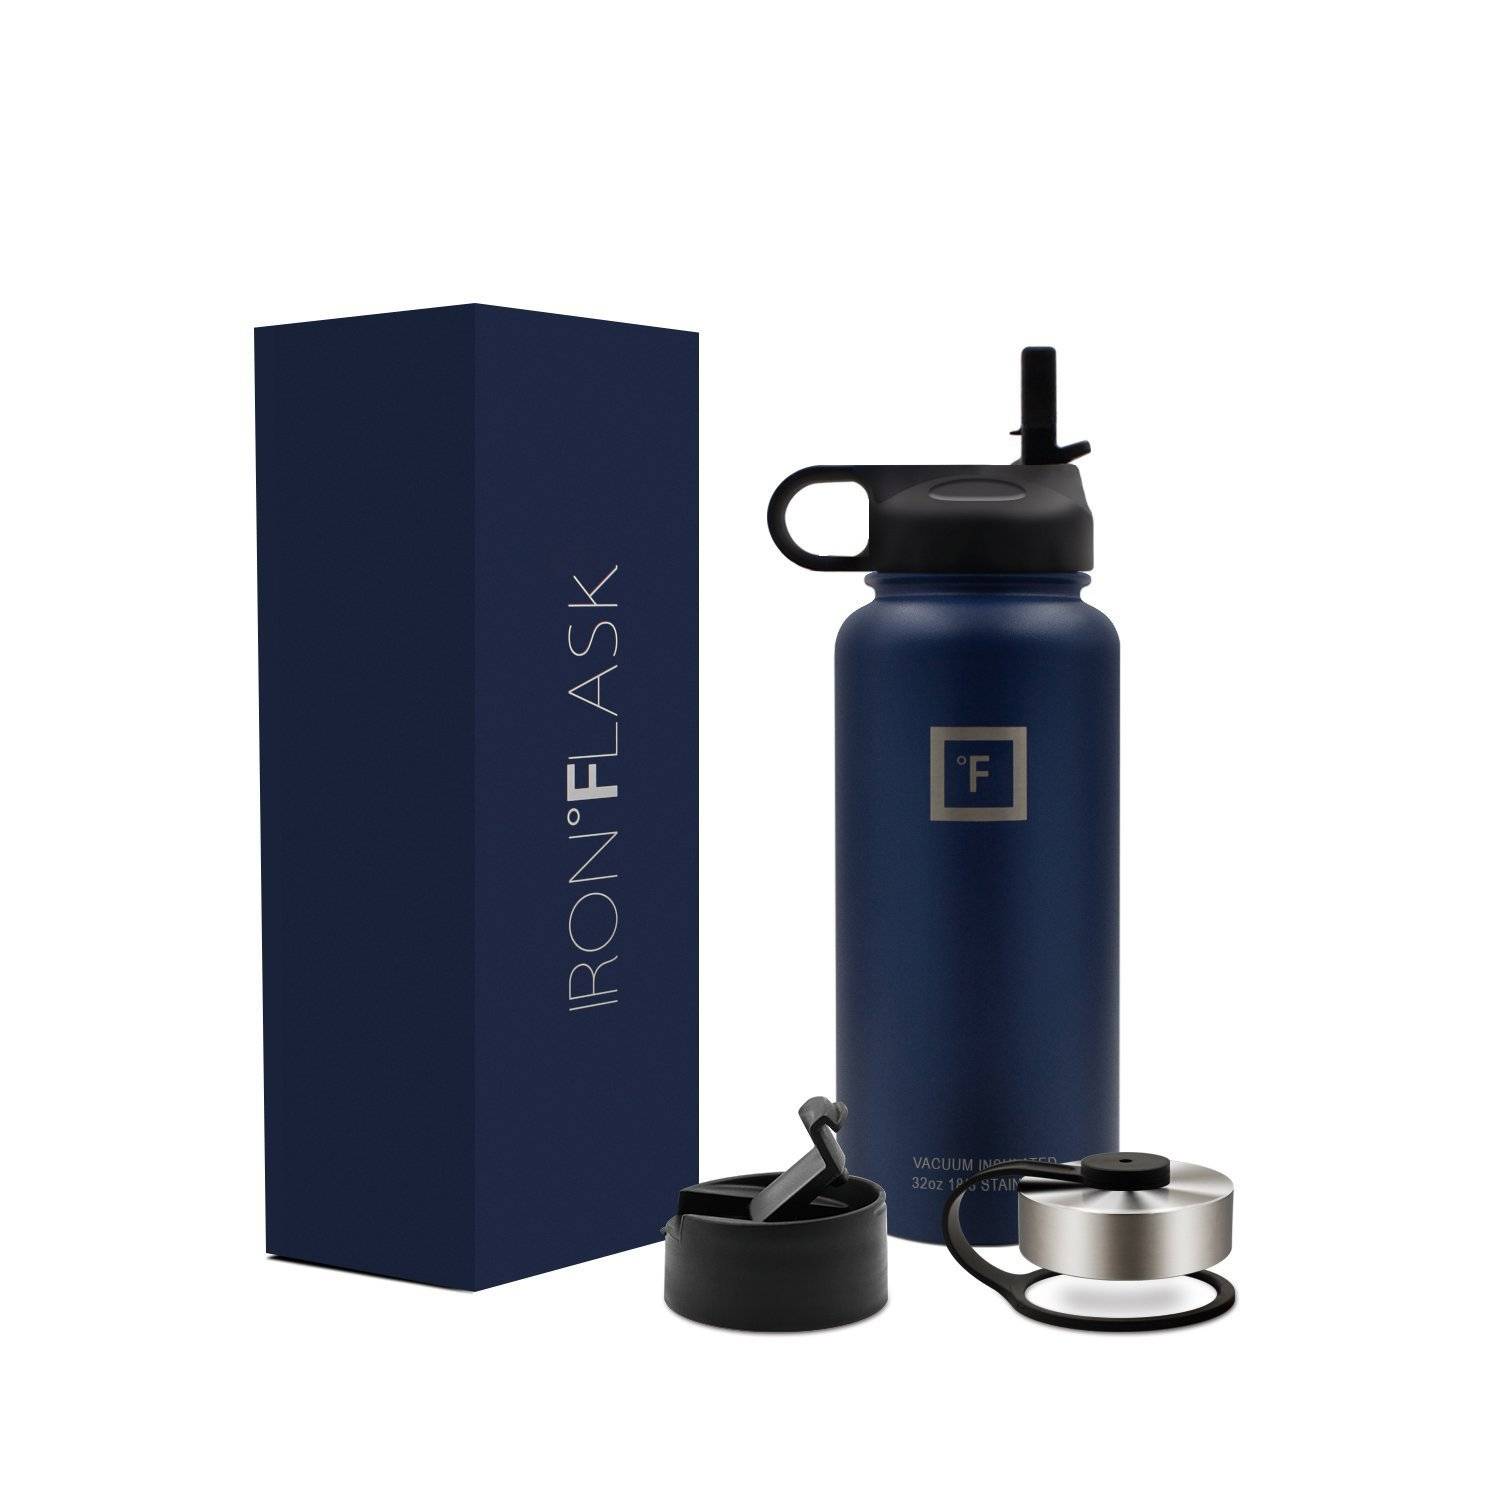 Iron Flask - 64 Oz, 3 Lids, Vacuum Insulated Stainless Steel Water Bottle, Hot & Cold, Wide Mouth, Double Walled, Nalgene, Simple Thermo Modern Travel Mug, Hydro Canteen